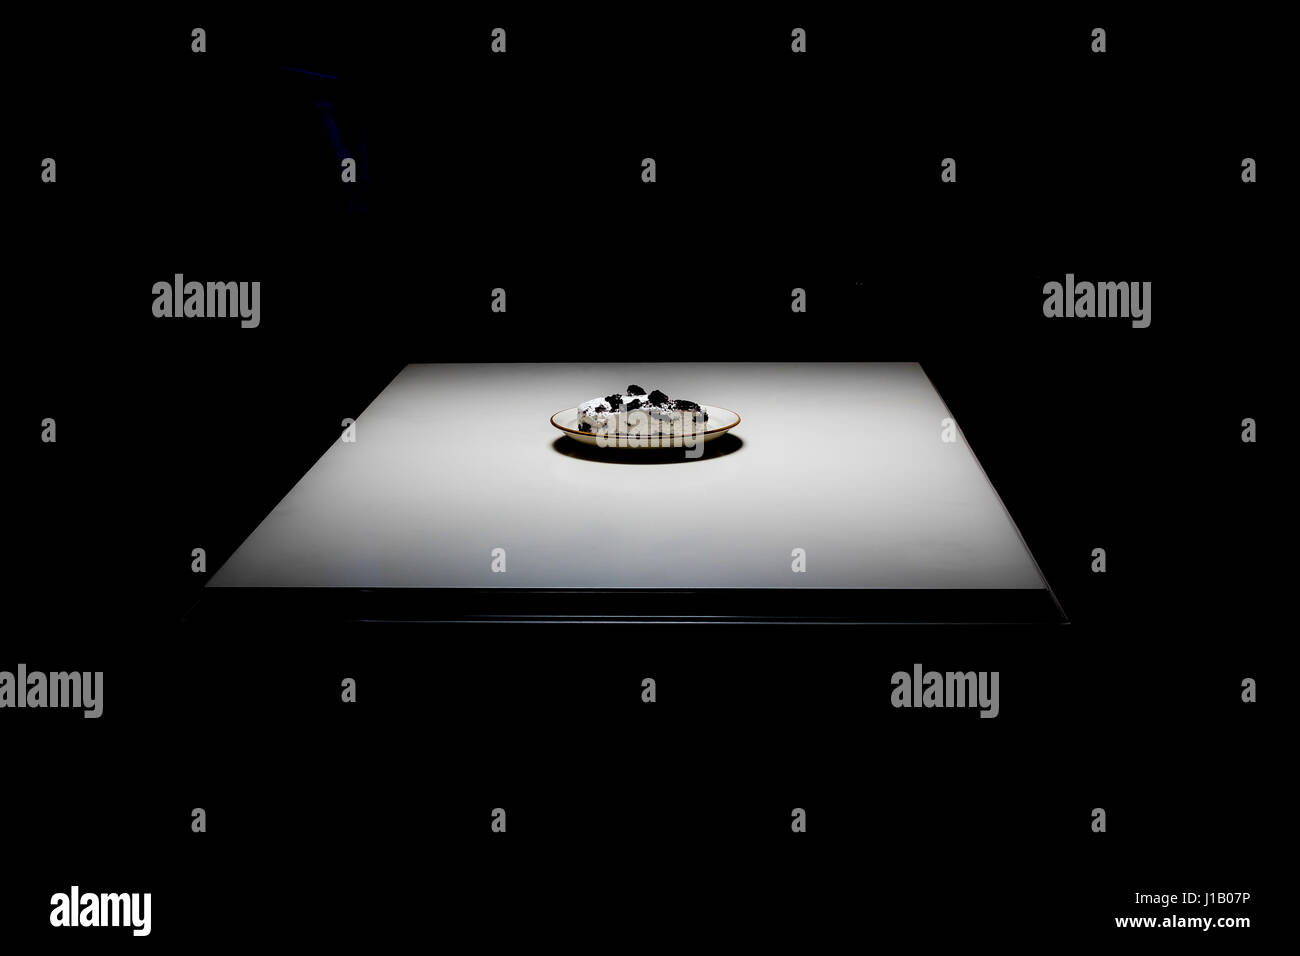 Oreooo Cheesecake - Stock Image